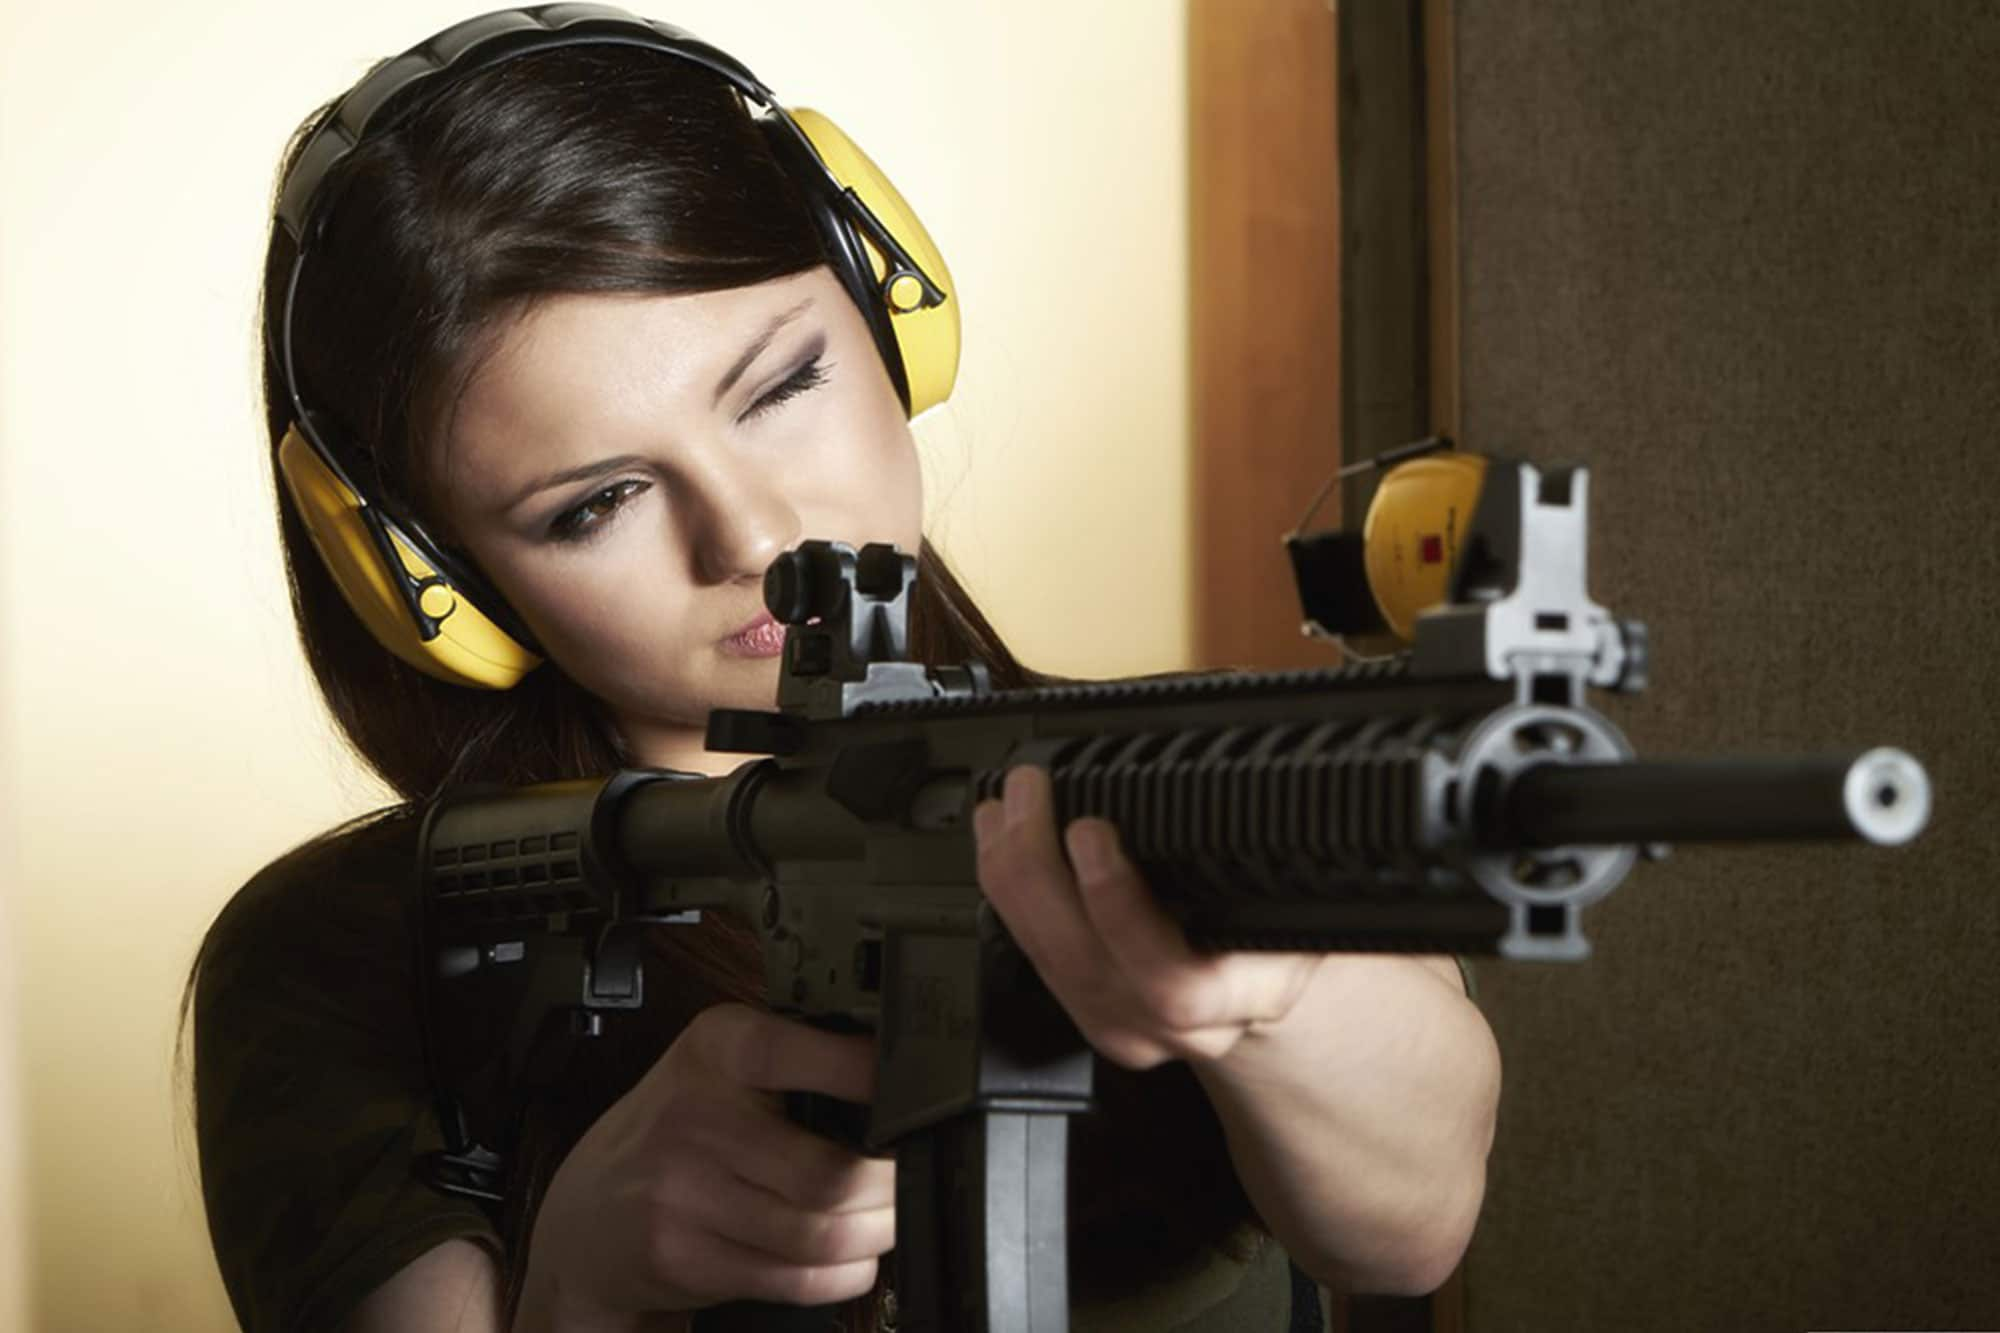 Both girls and guys can enjoy this extreme gun shooting package while in Gdansk